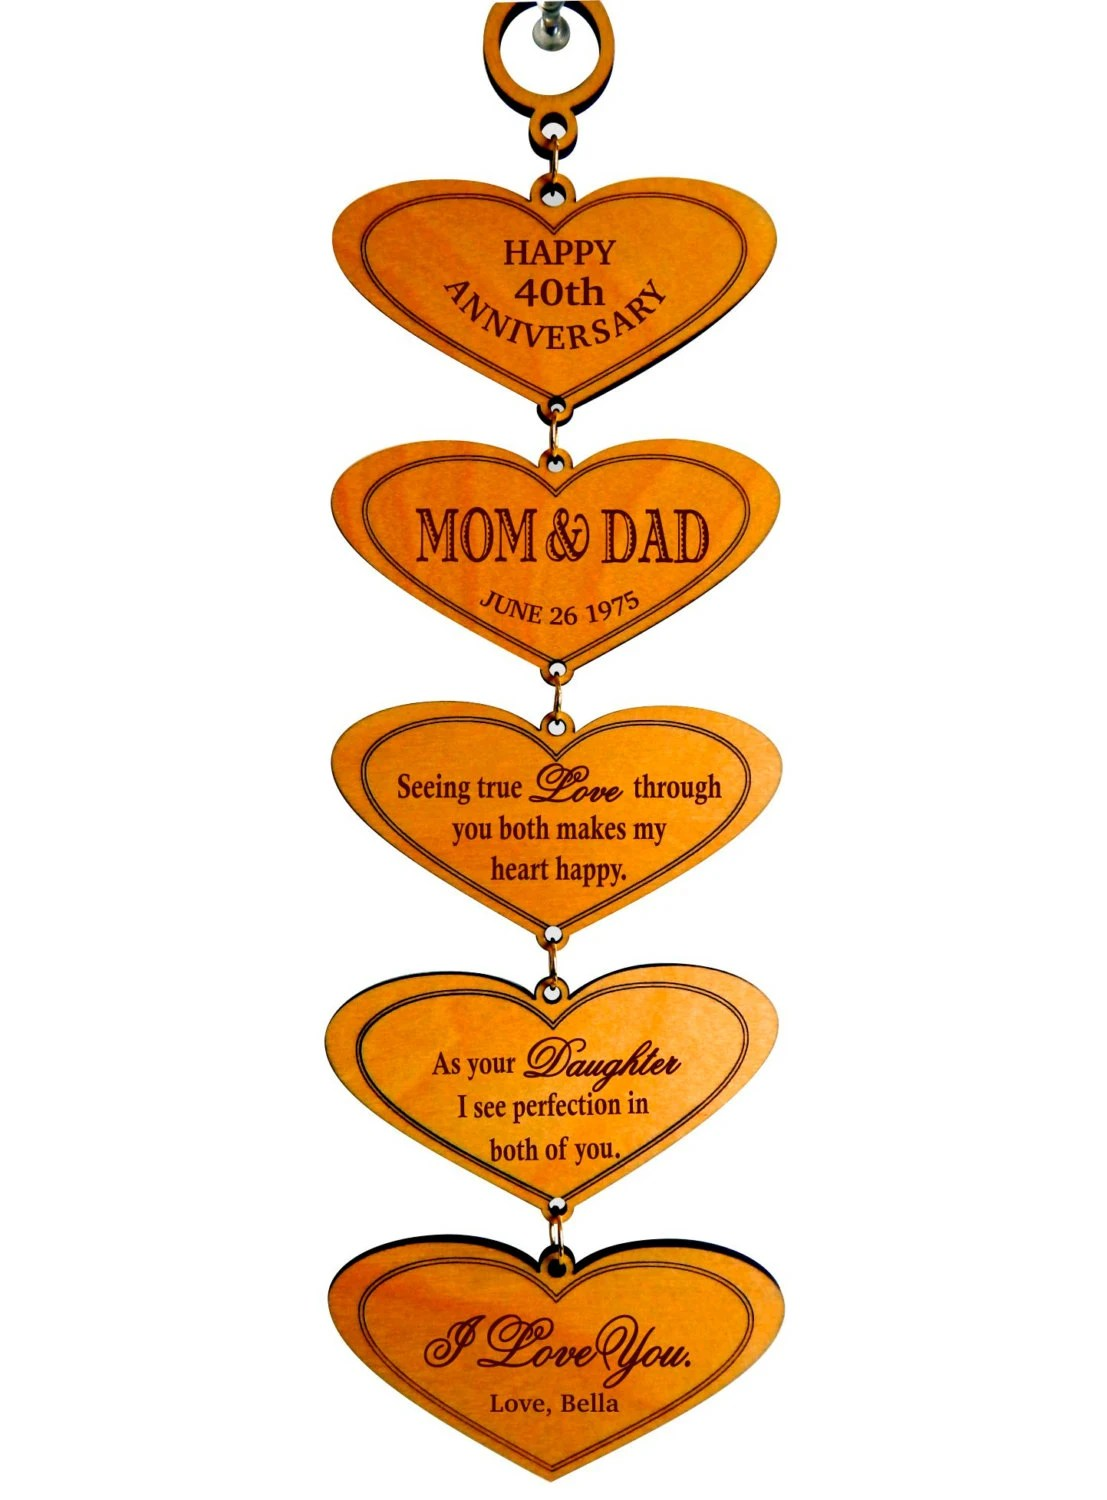 anniversary gift for parents parent wedding gifts 40th Wedding Anniversary Gift for Mom and Dad from Daughter Gift for my Parents on